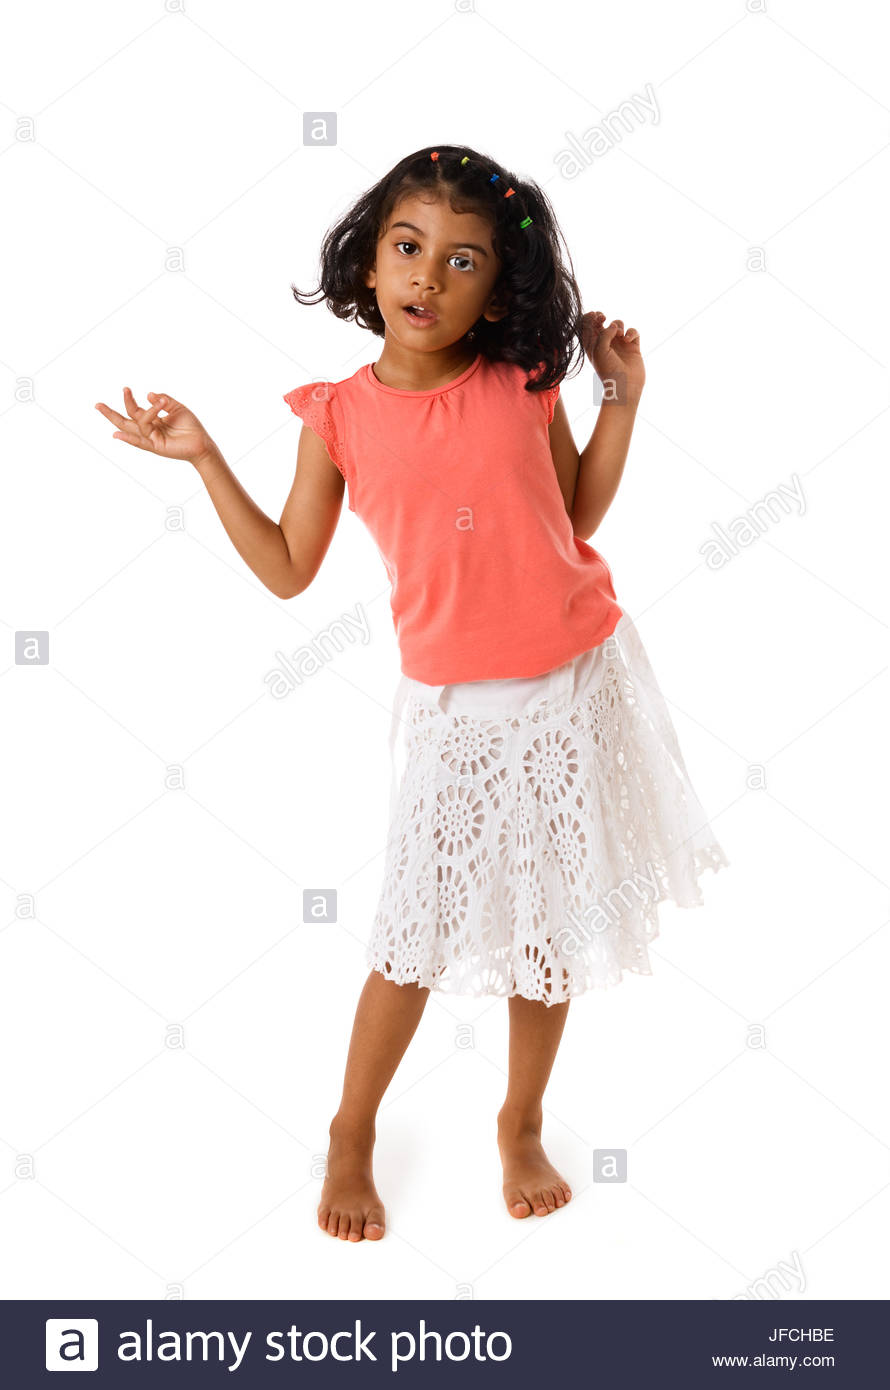 Cute little girl standing barefoot on white background Stock Photo 890x1390